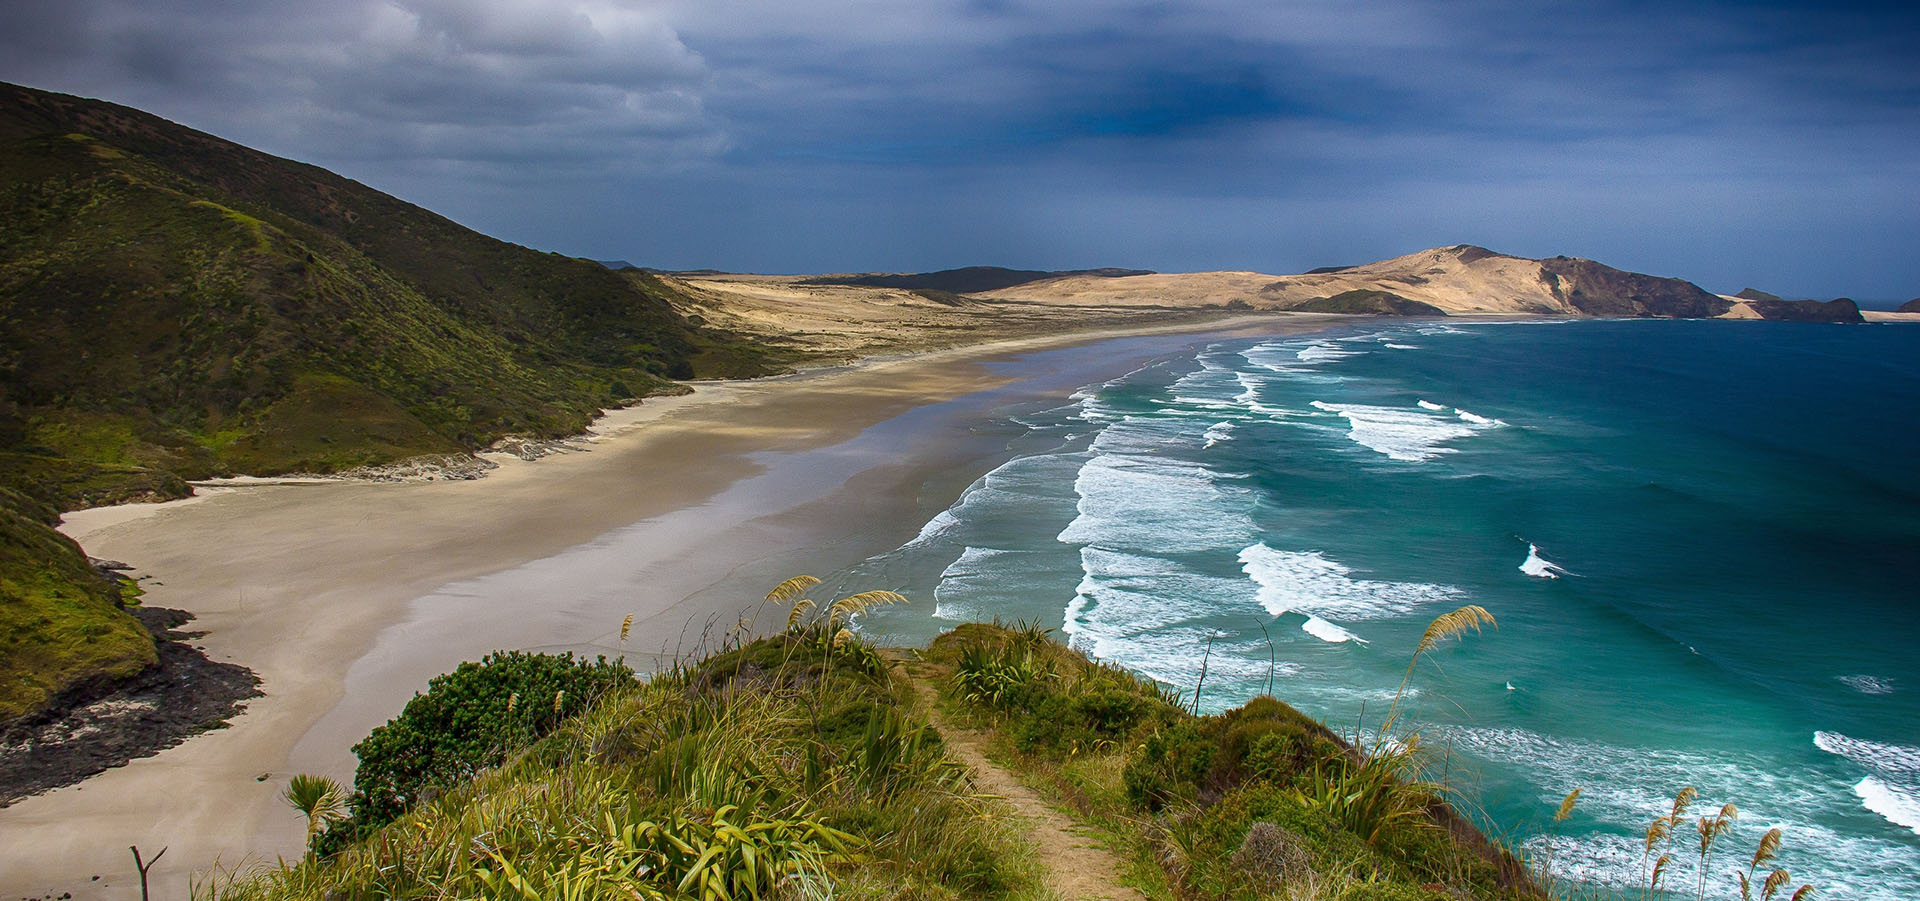 Best Places to Visit: 5 Places that you need to see in New Zealand